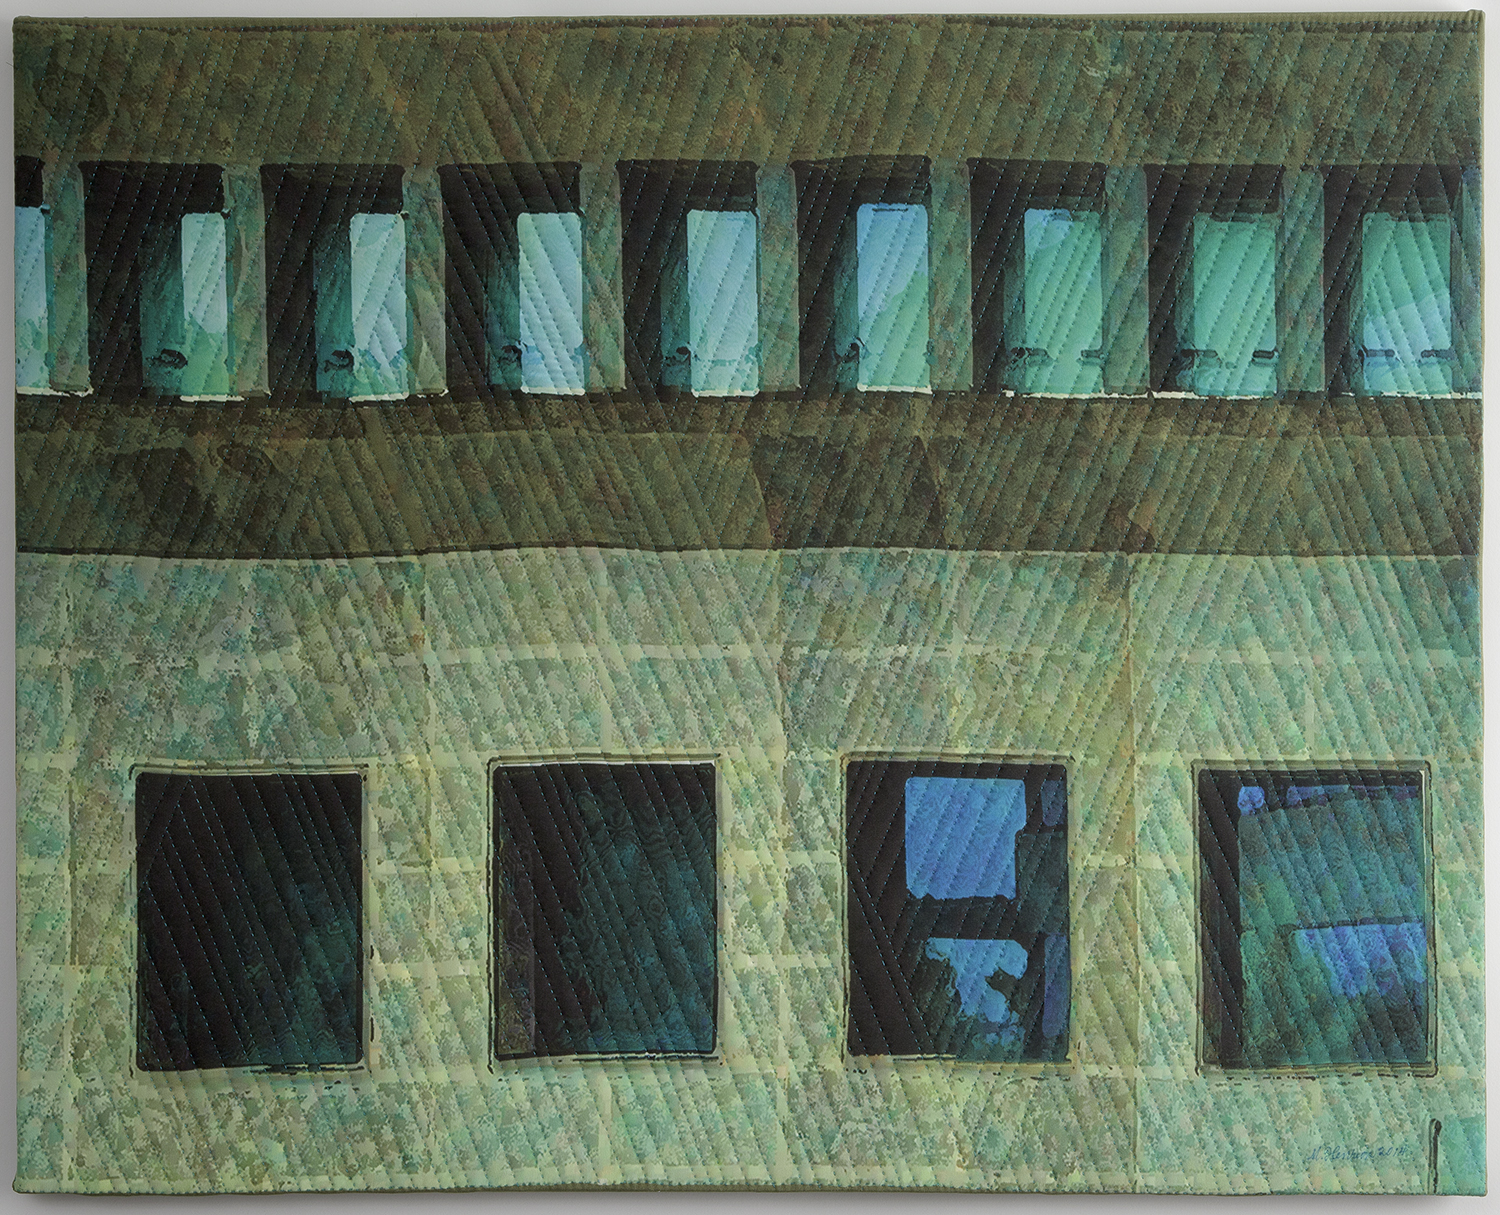 "2000-13. New York Windows 1451, 24""x30""x1"", mixed media on silk, hand quilted, gallery-wrapped stretched canvas"